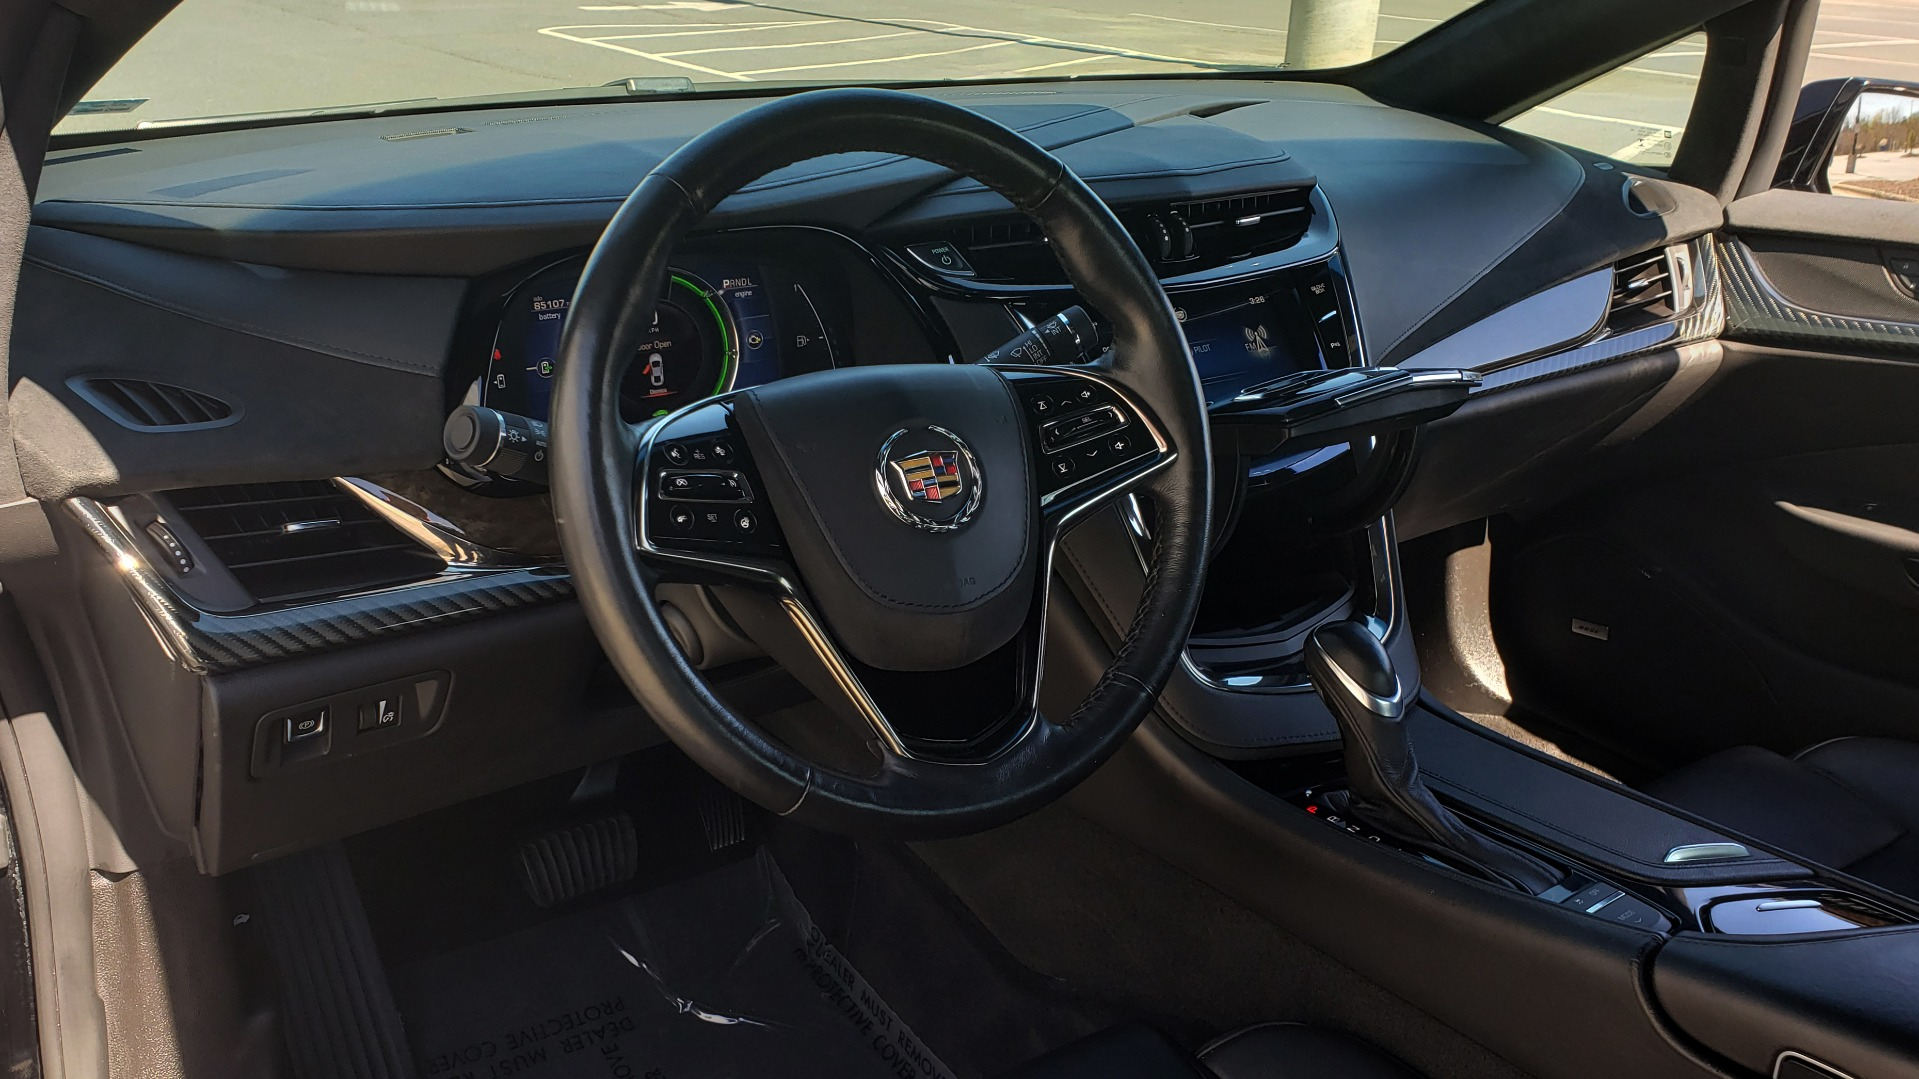 Used 2014 Cadillac ELR 2DR COUPE / HYBRID / NAV / BOSE / HEATED SEATS / REARVIEW for sale $19,995 at Formula Imports in Charlotte NC 28227 33